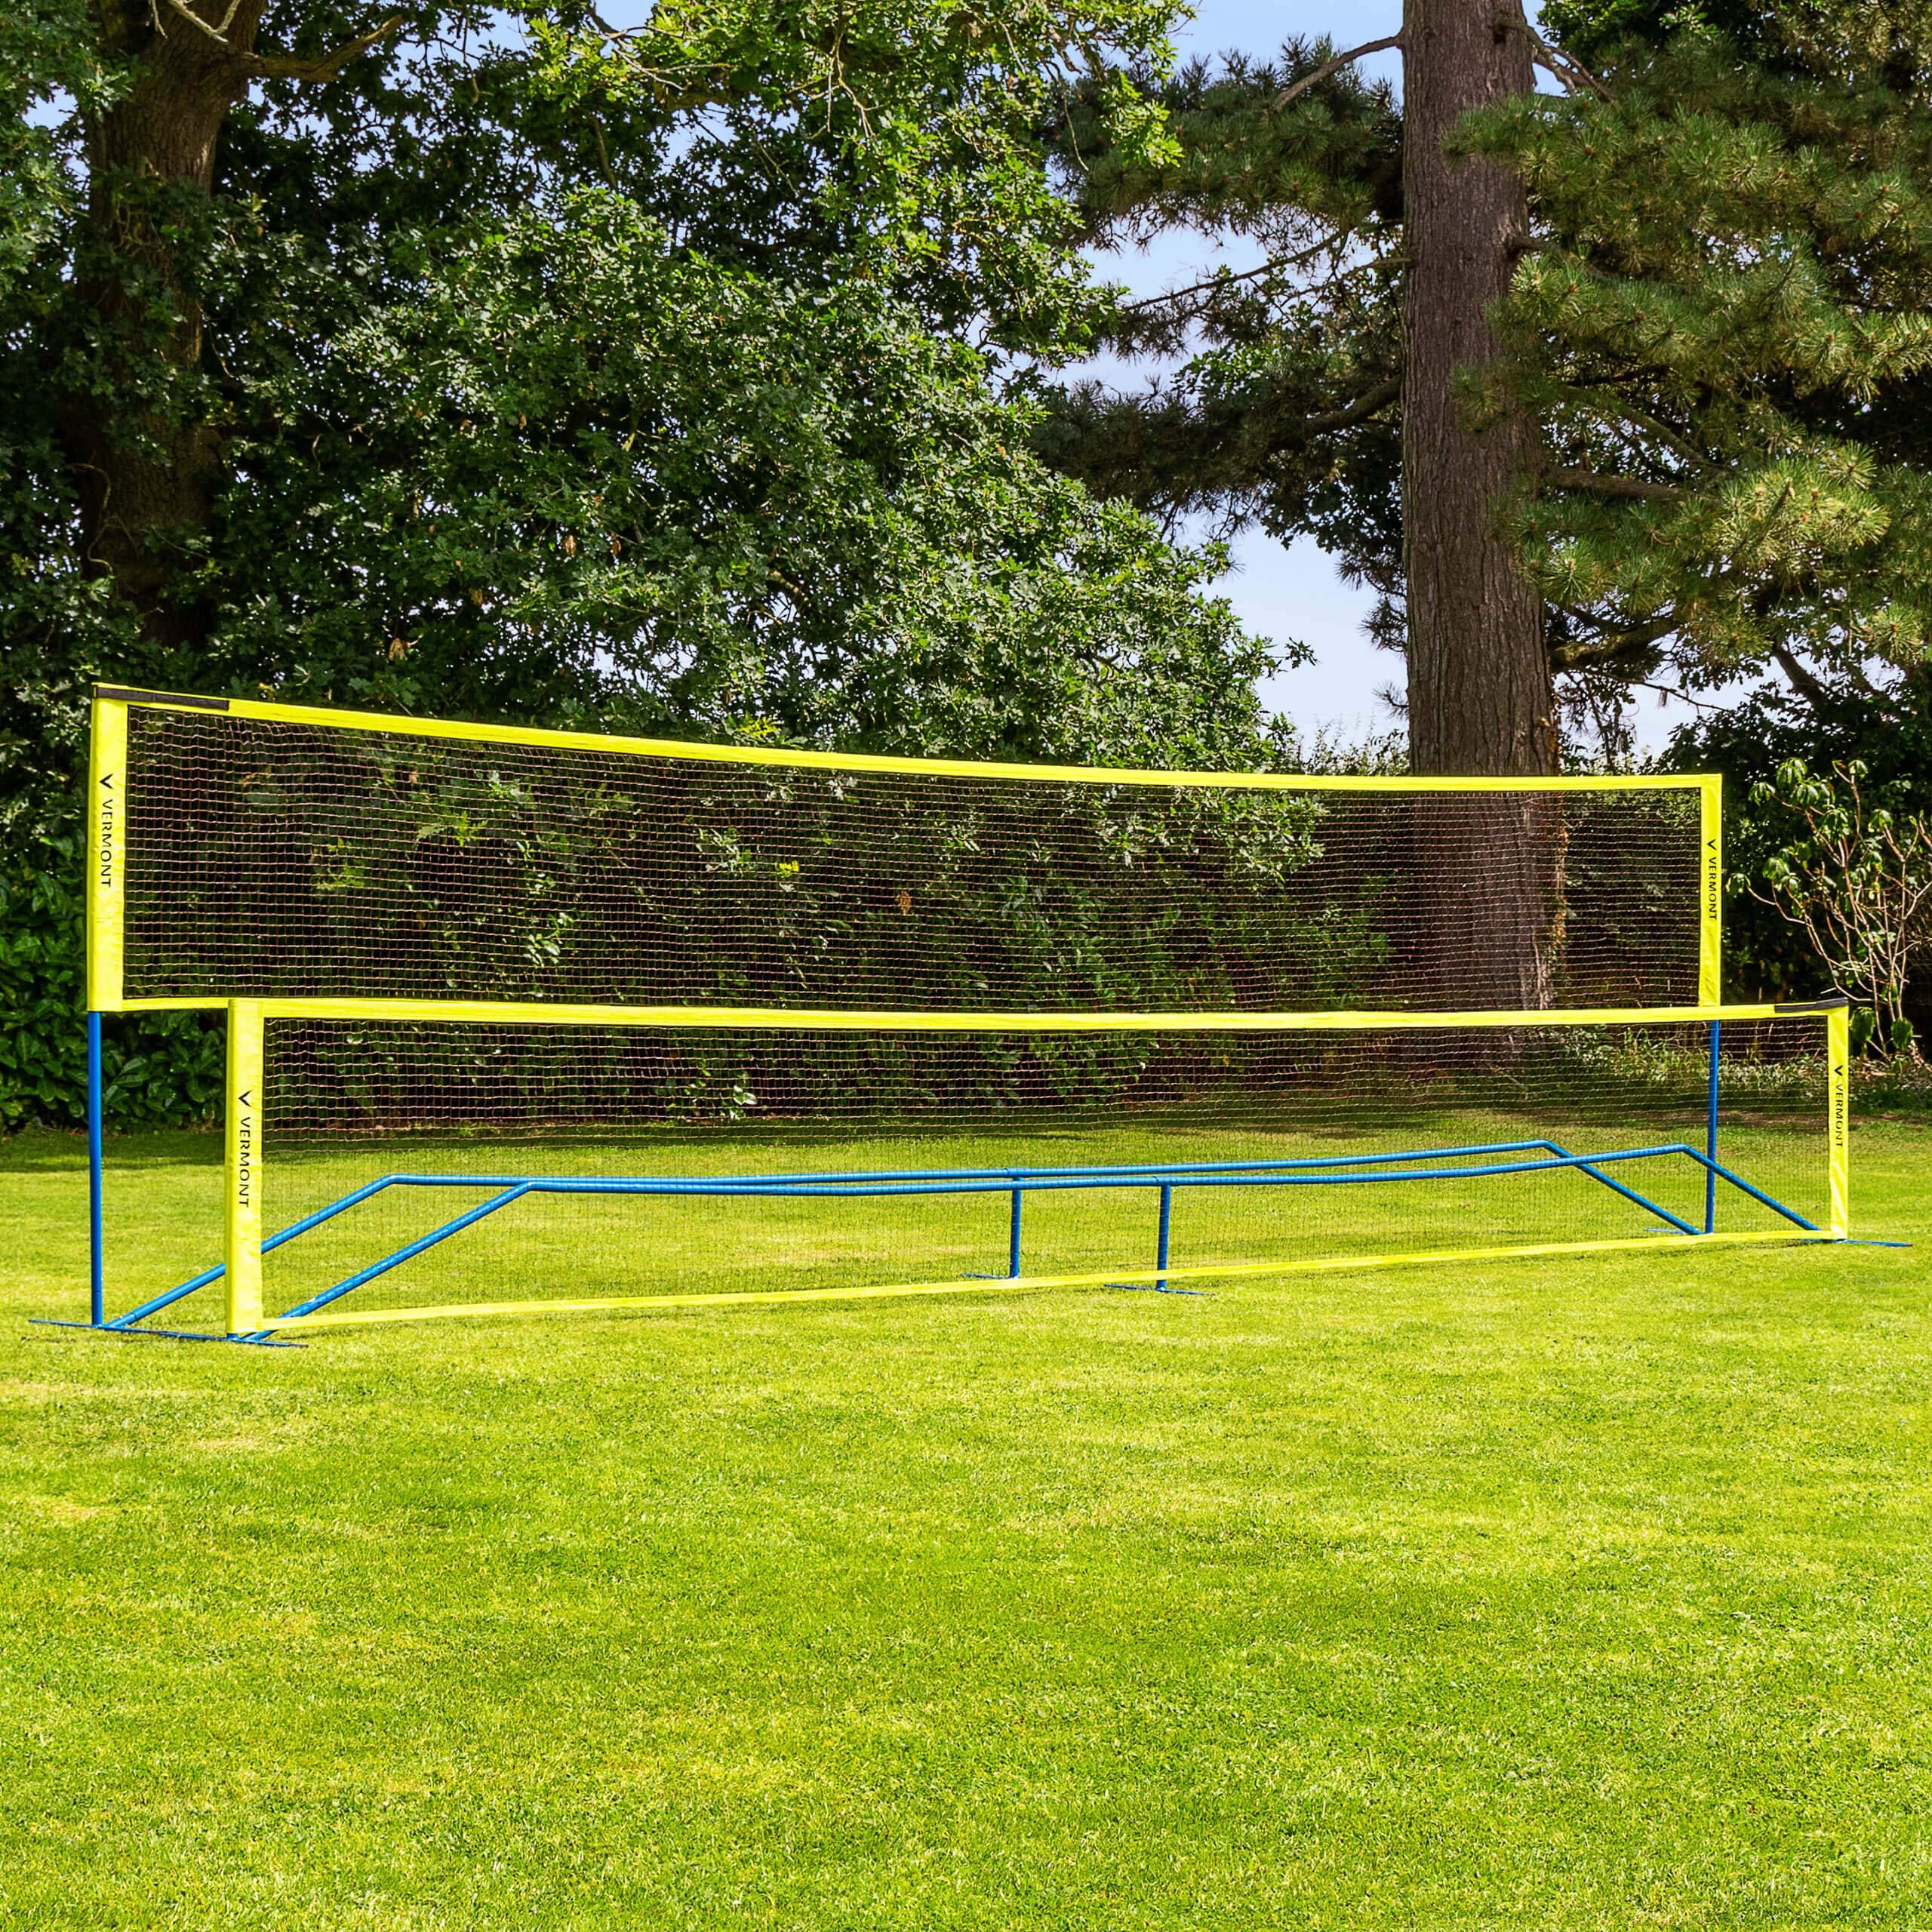 ProCourt Vermont Combi Net | Perfect for Tennis, Badminton, Pickleball, Volleyball & Soccer Tennis | Super Quick Assembly with Steel Poles | Use Indoors, Outdoors, On The Beach Or The Backyard! by ProCourt (Image #1)